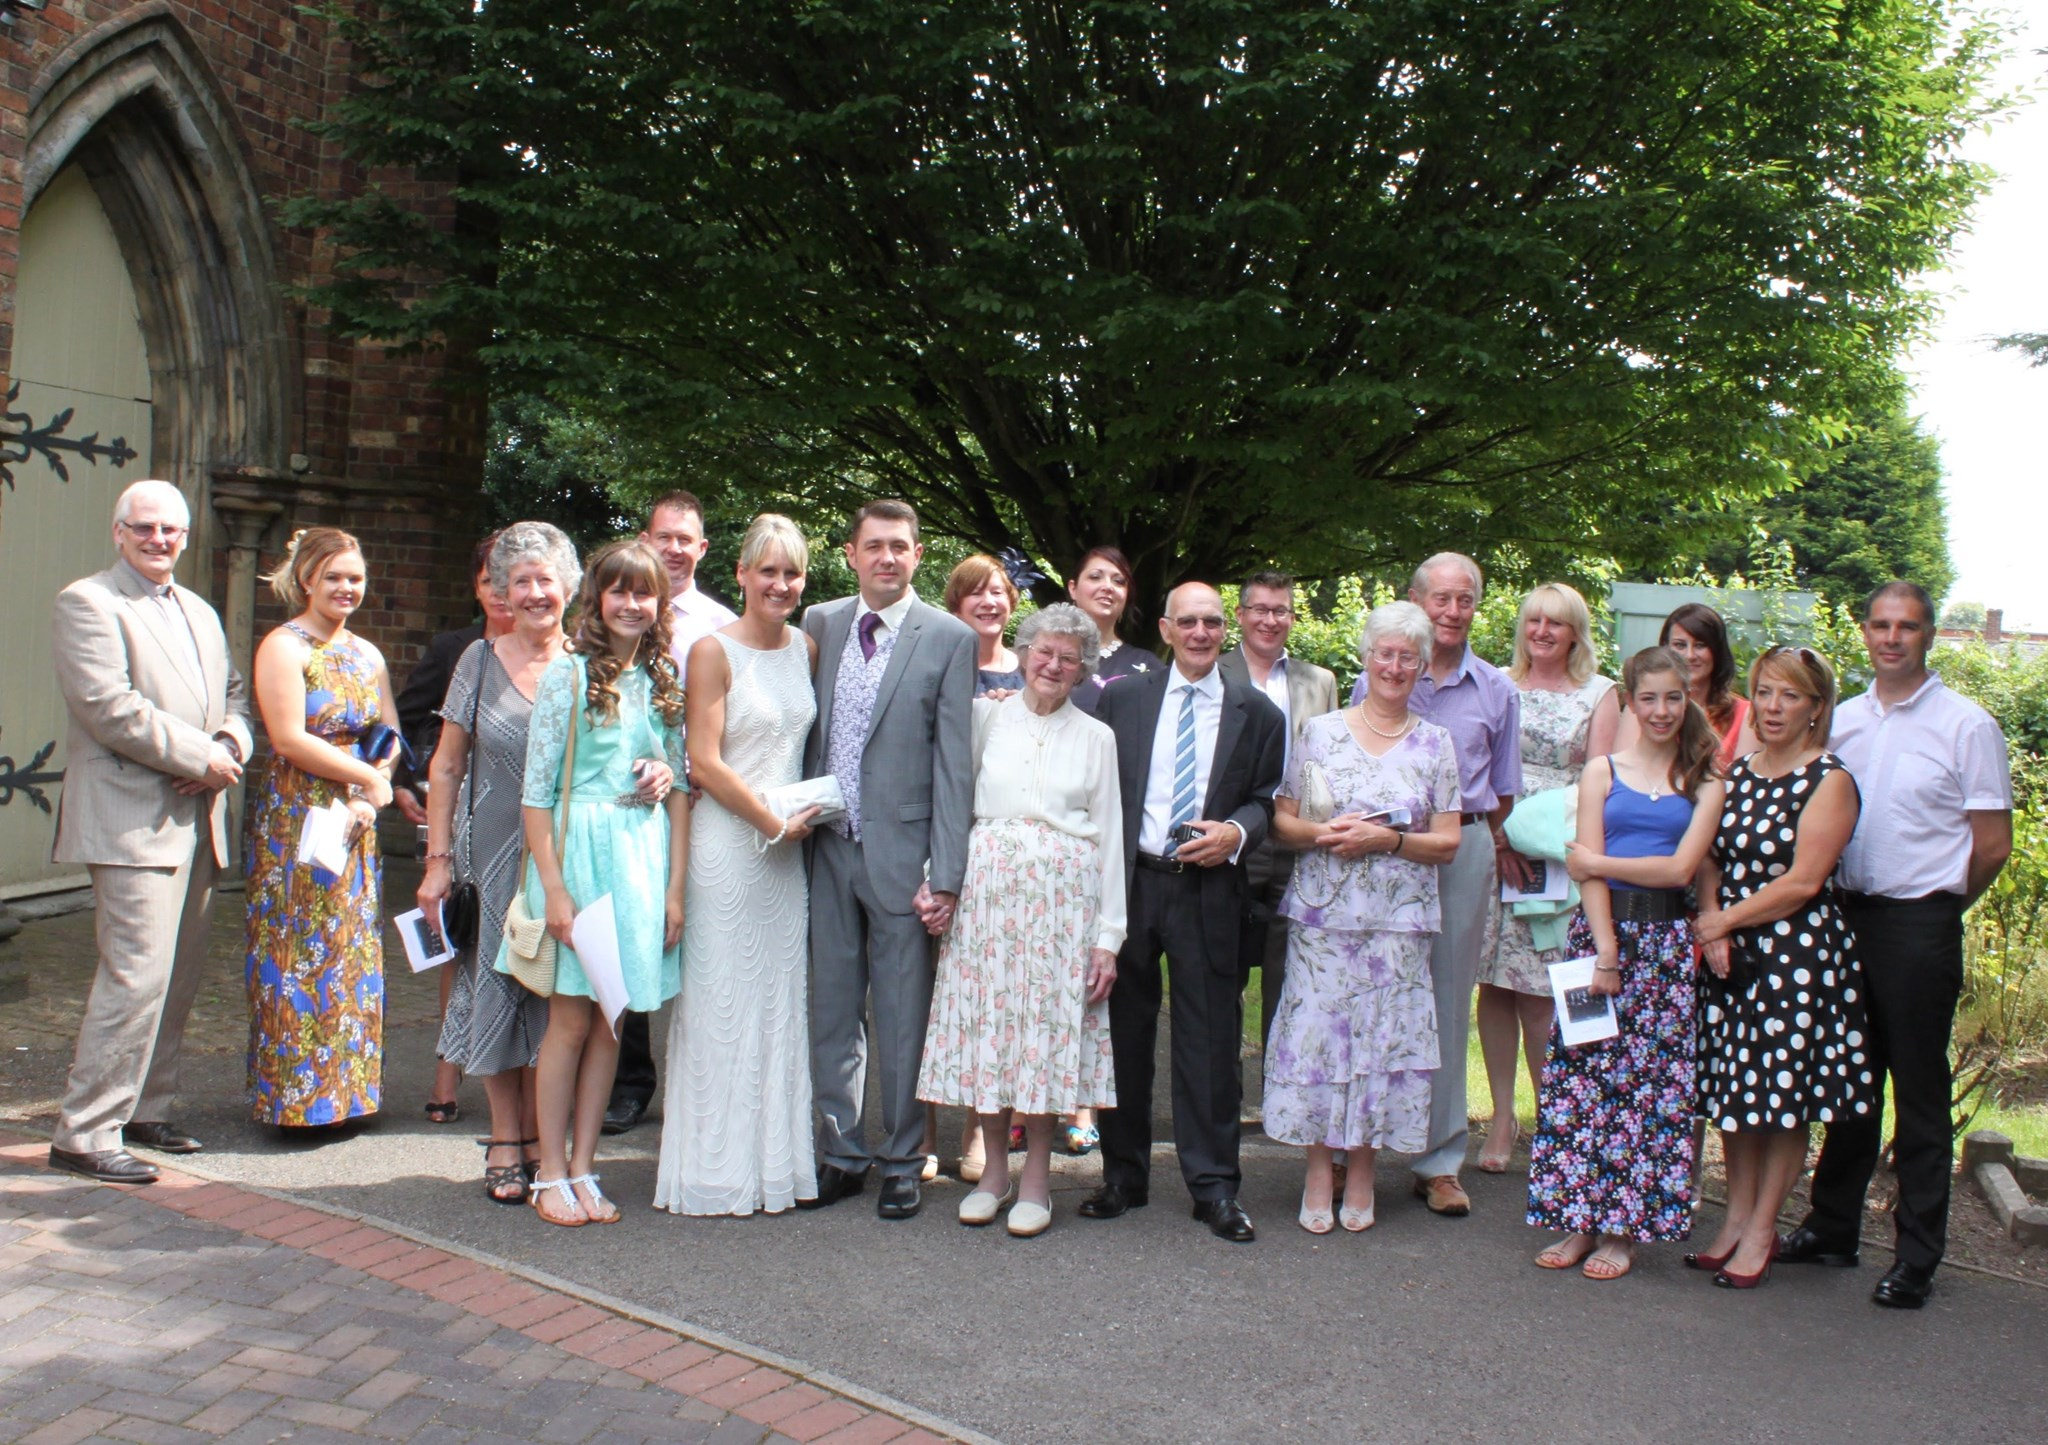 20 Years Renewal of Vows. July 2014. A Great Day